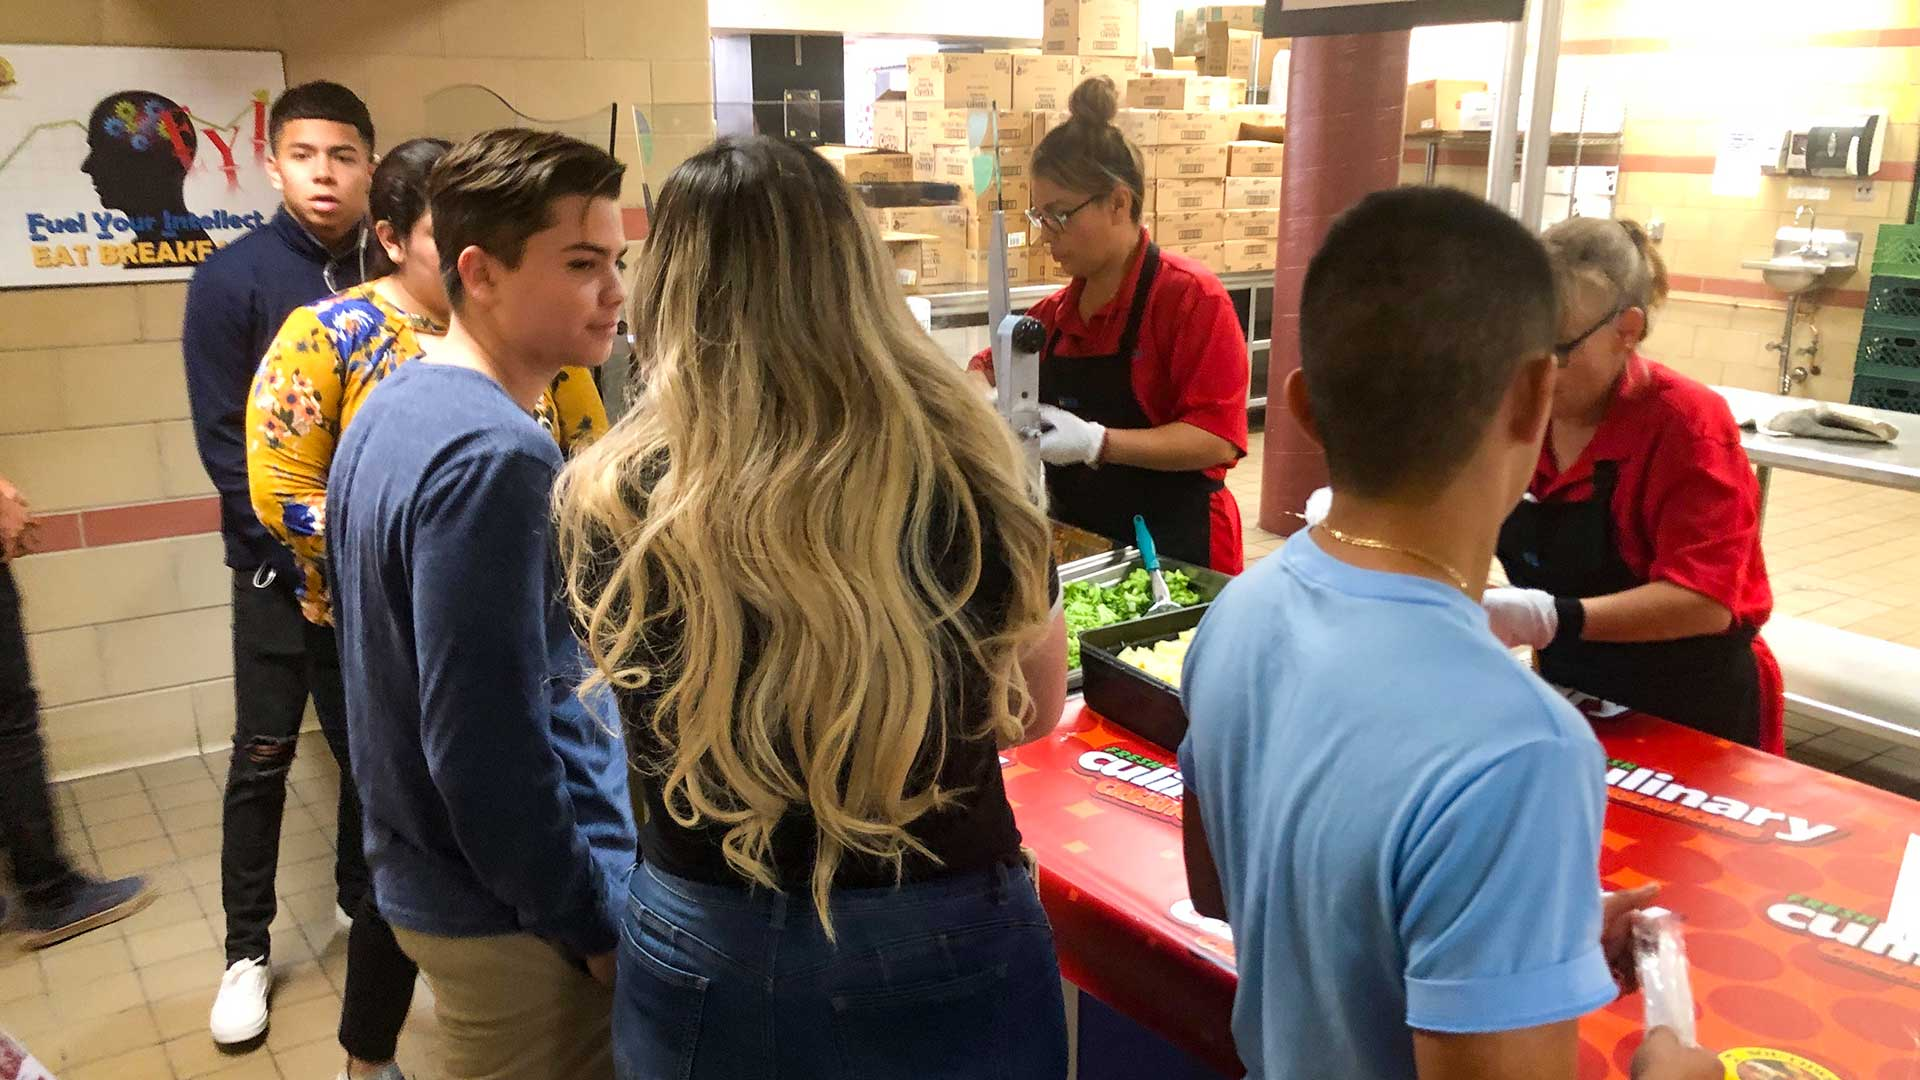 Students at Desert View High School getting a summer meal offered by the Sunnyside School District, June 2019.